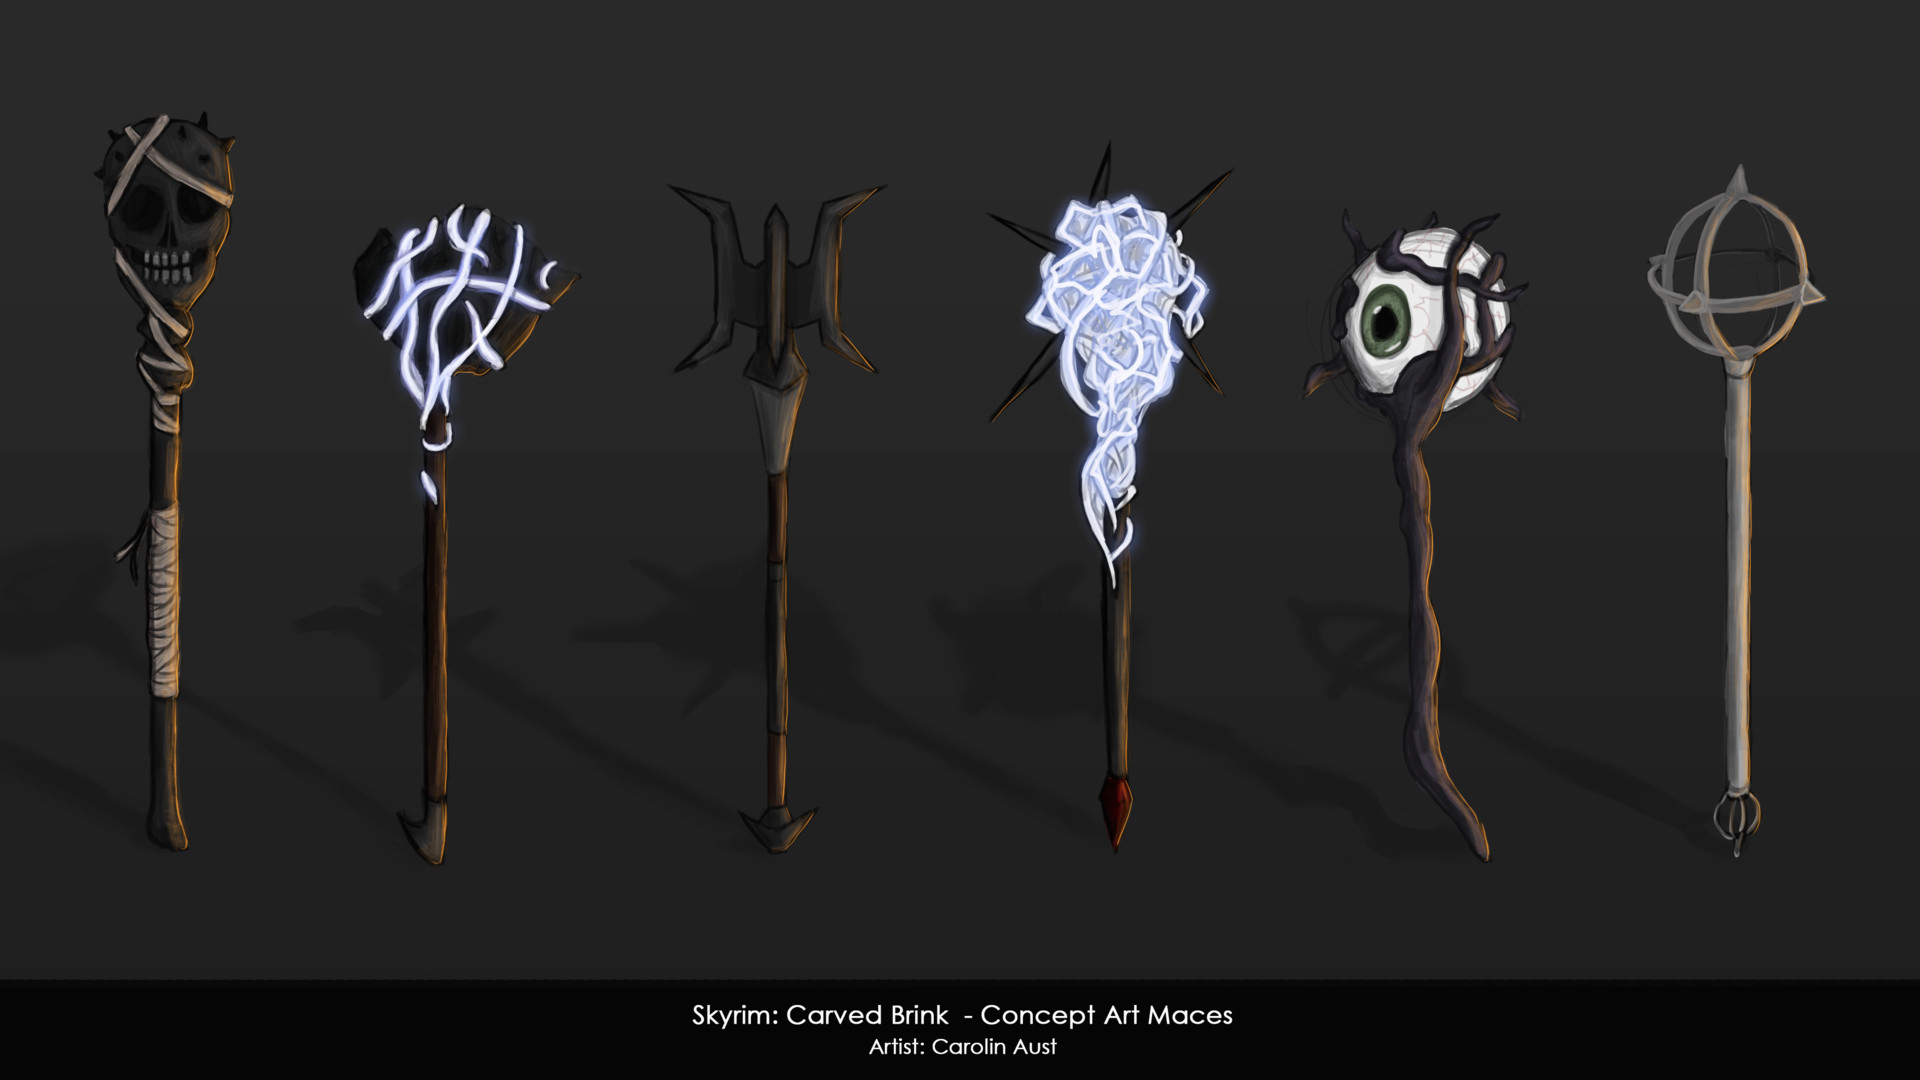 Dominik maral carolin aust carved brink conceptart maces